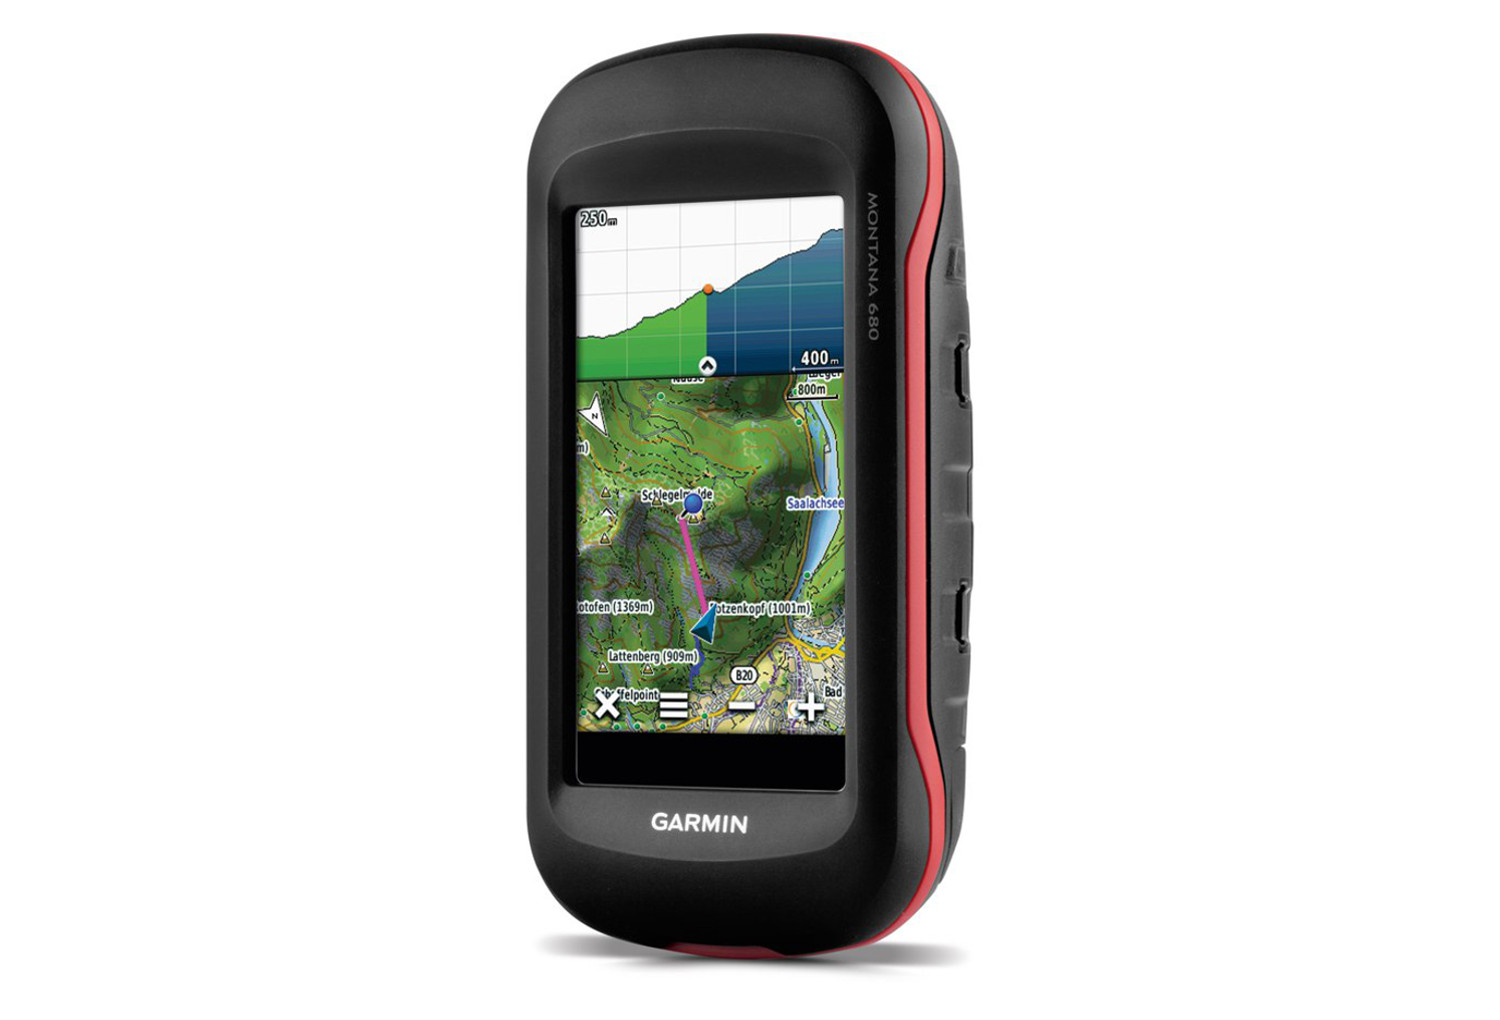 compteur gps garmin montana 680. Black Bedroom Furniture Sets. Home Design Ideas